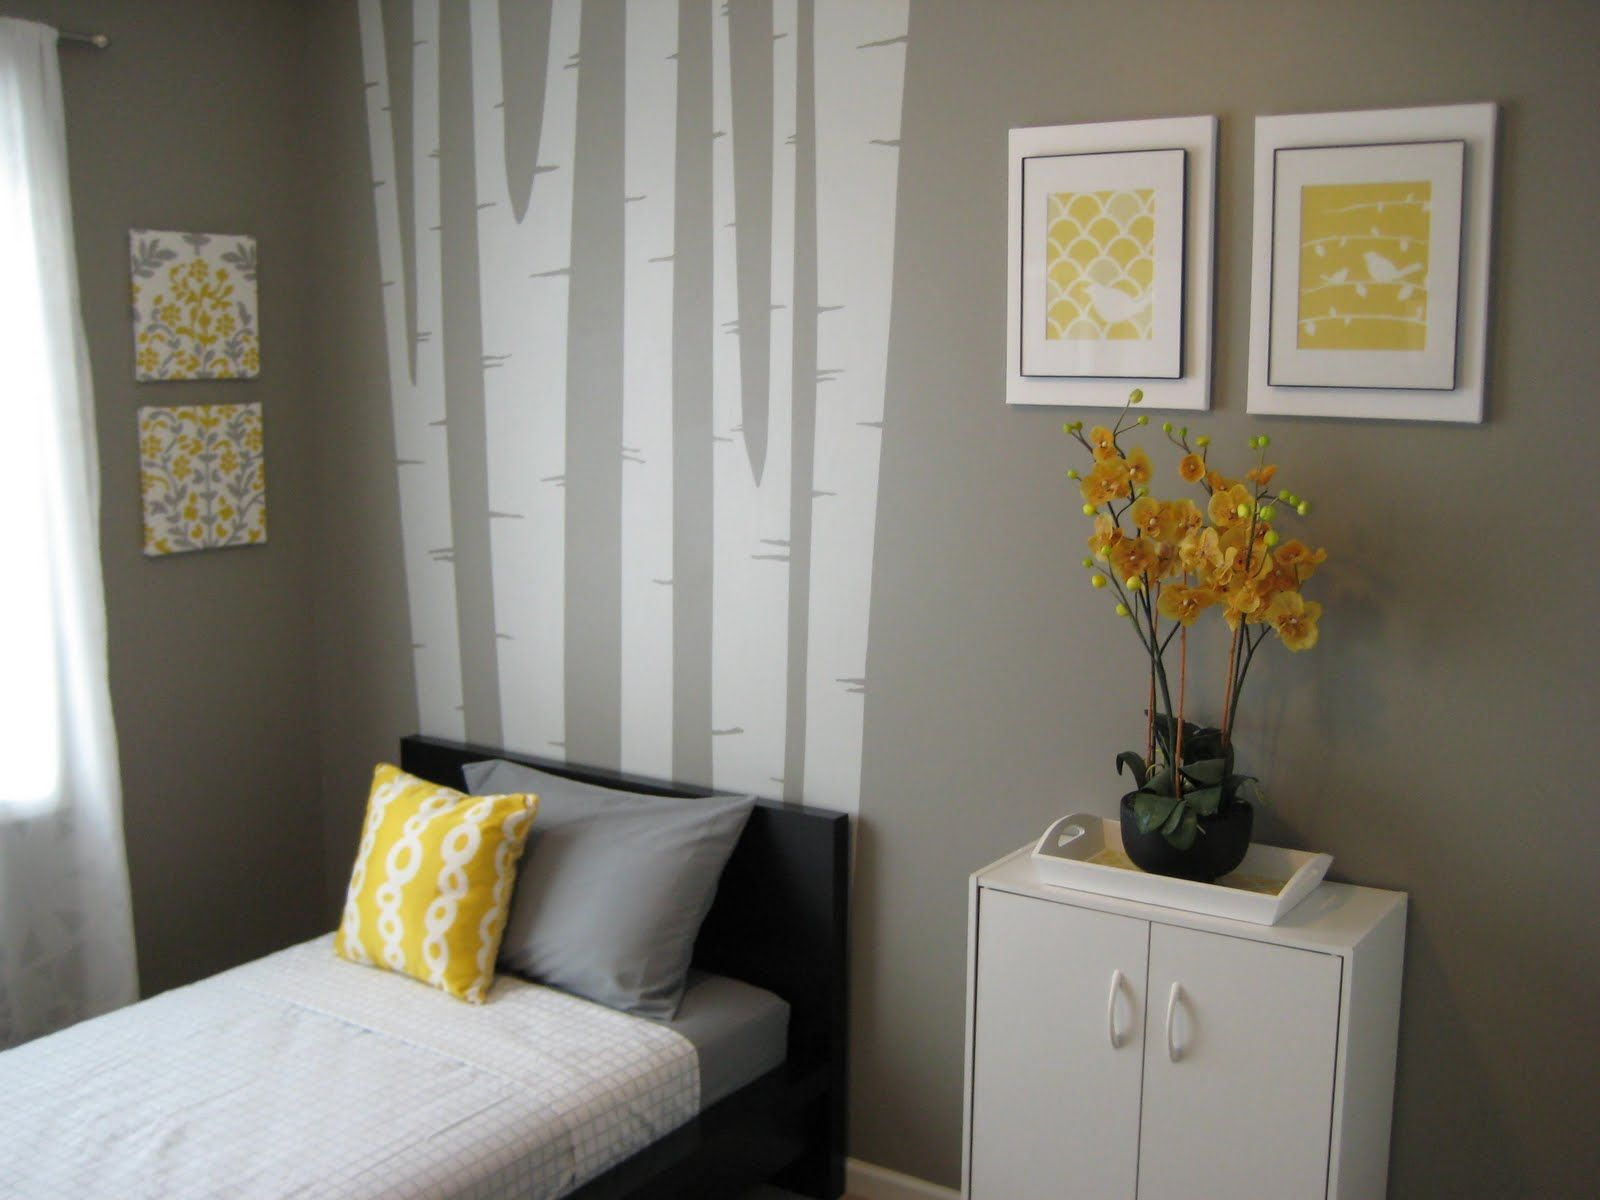 The spare bedroom interior design bedroom and attic for Decorating spare bedroom ideas